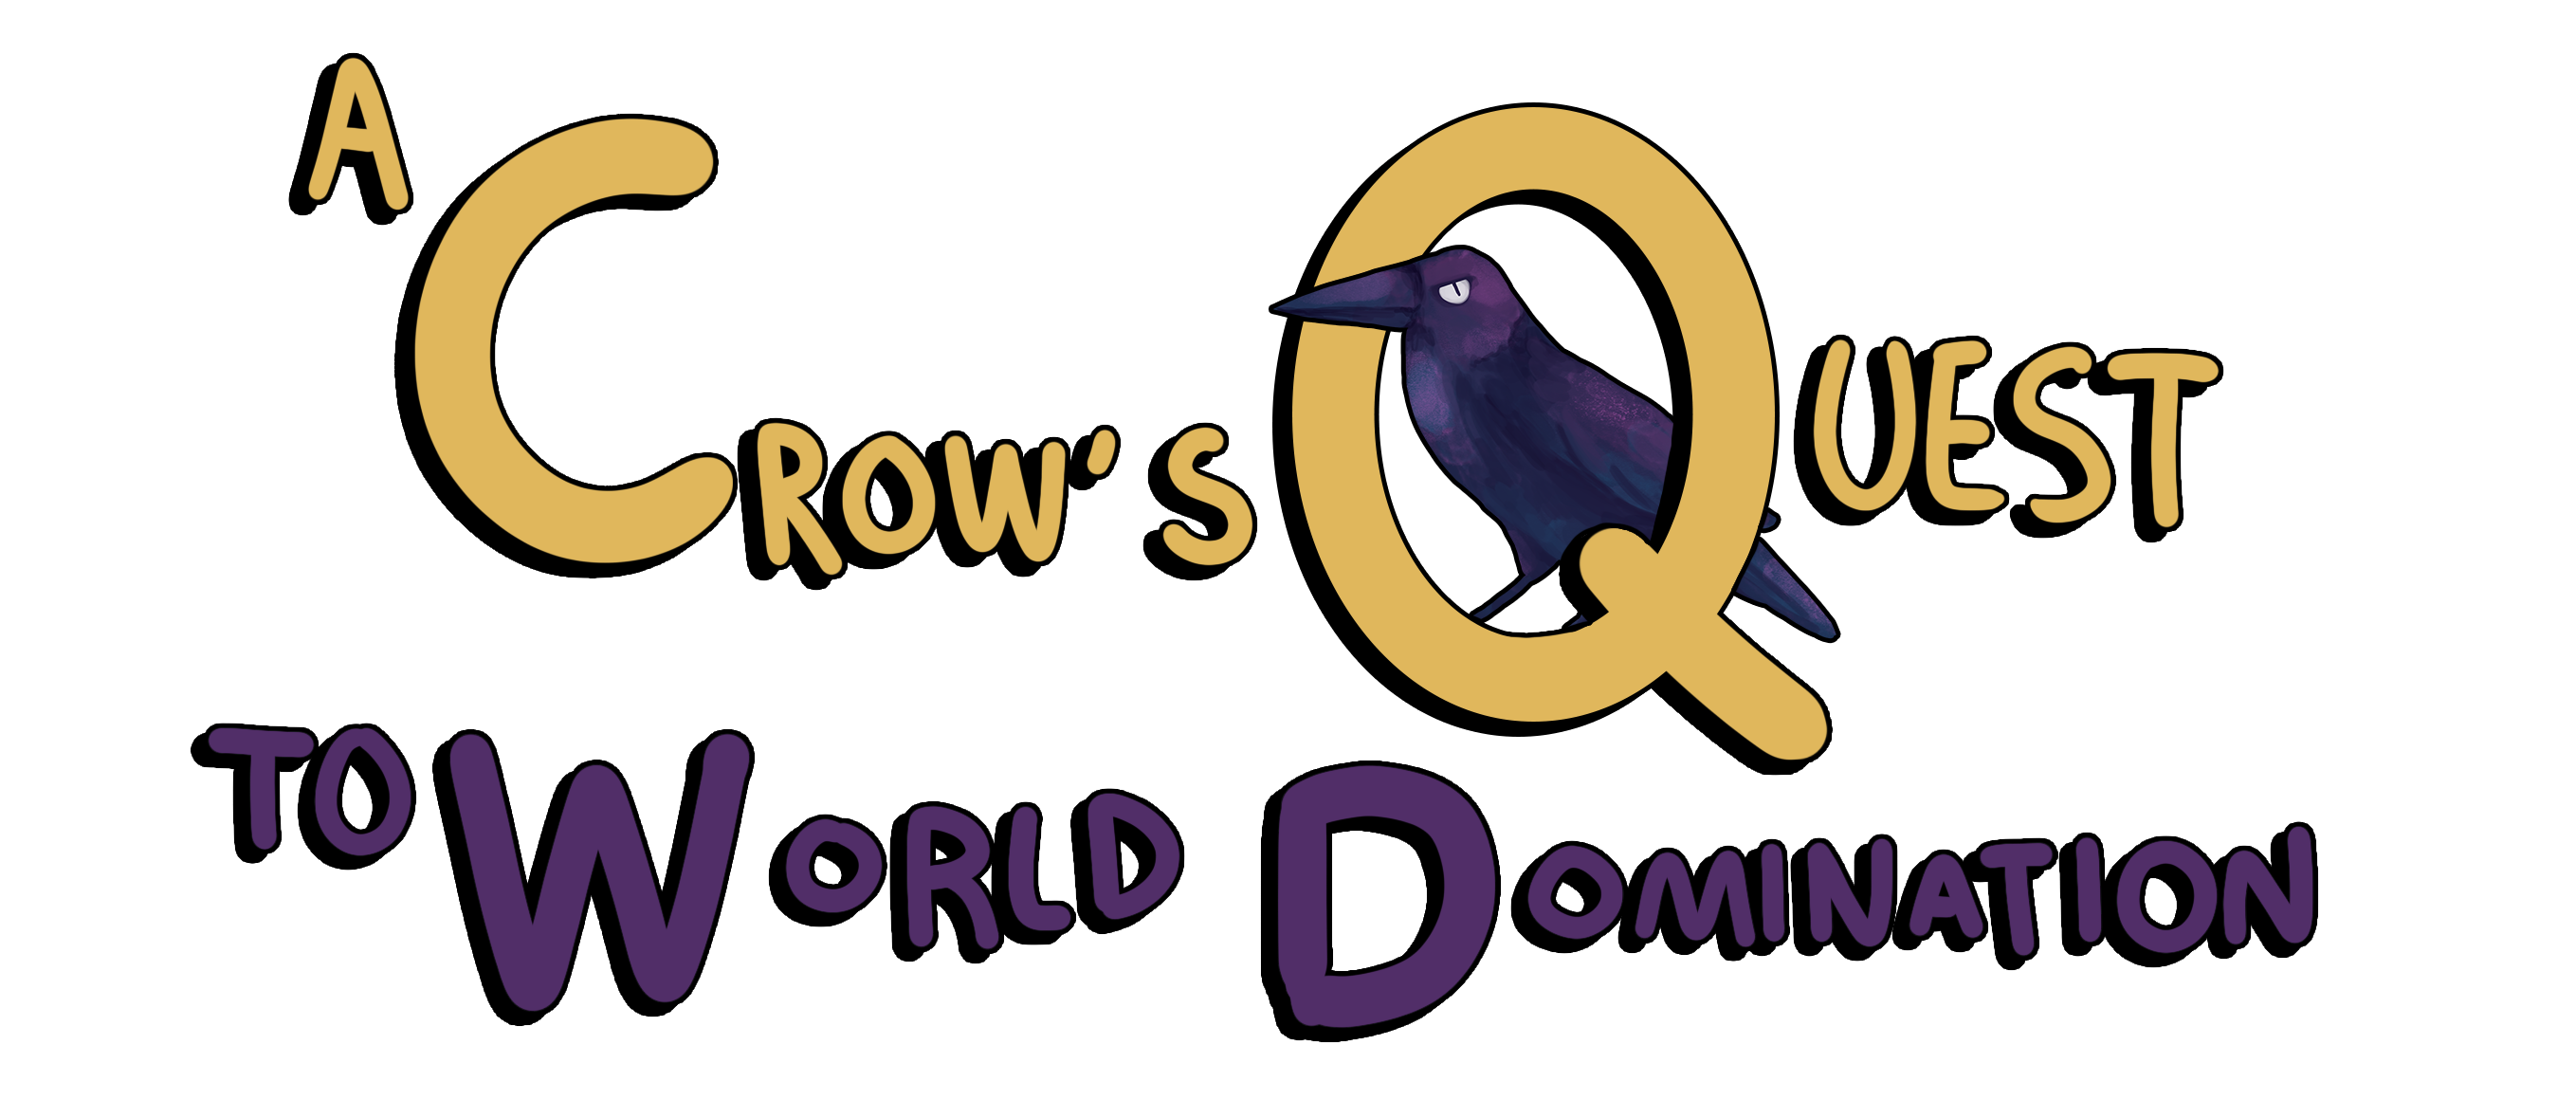 A Crow's Quest to World Domination